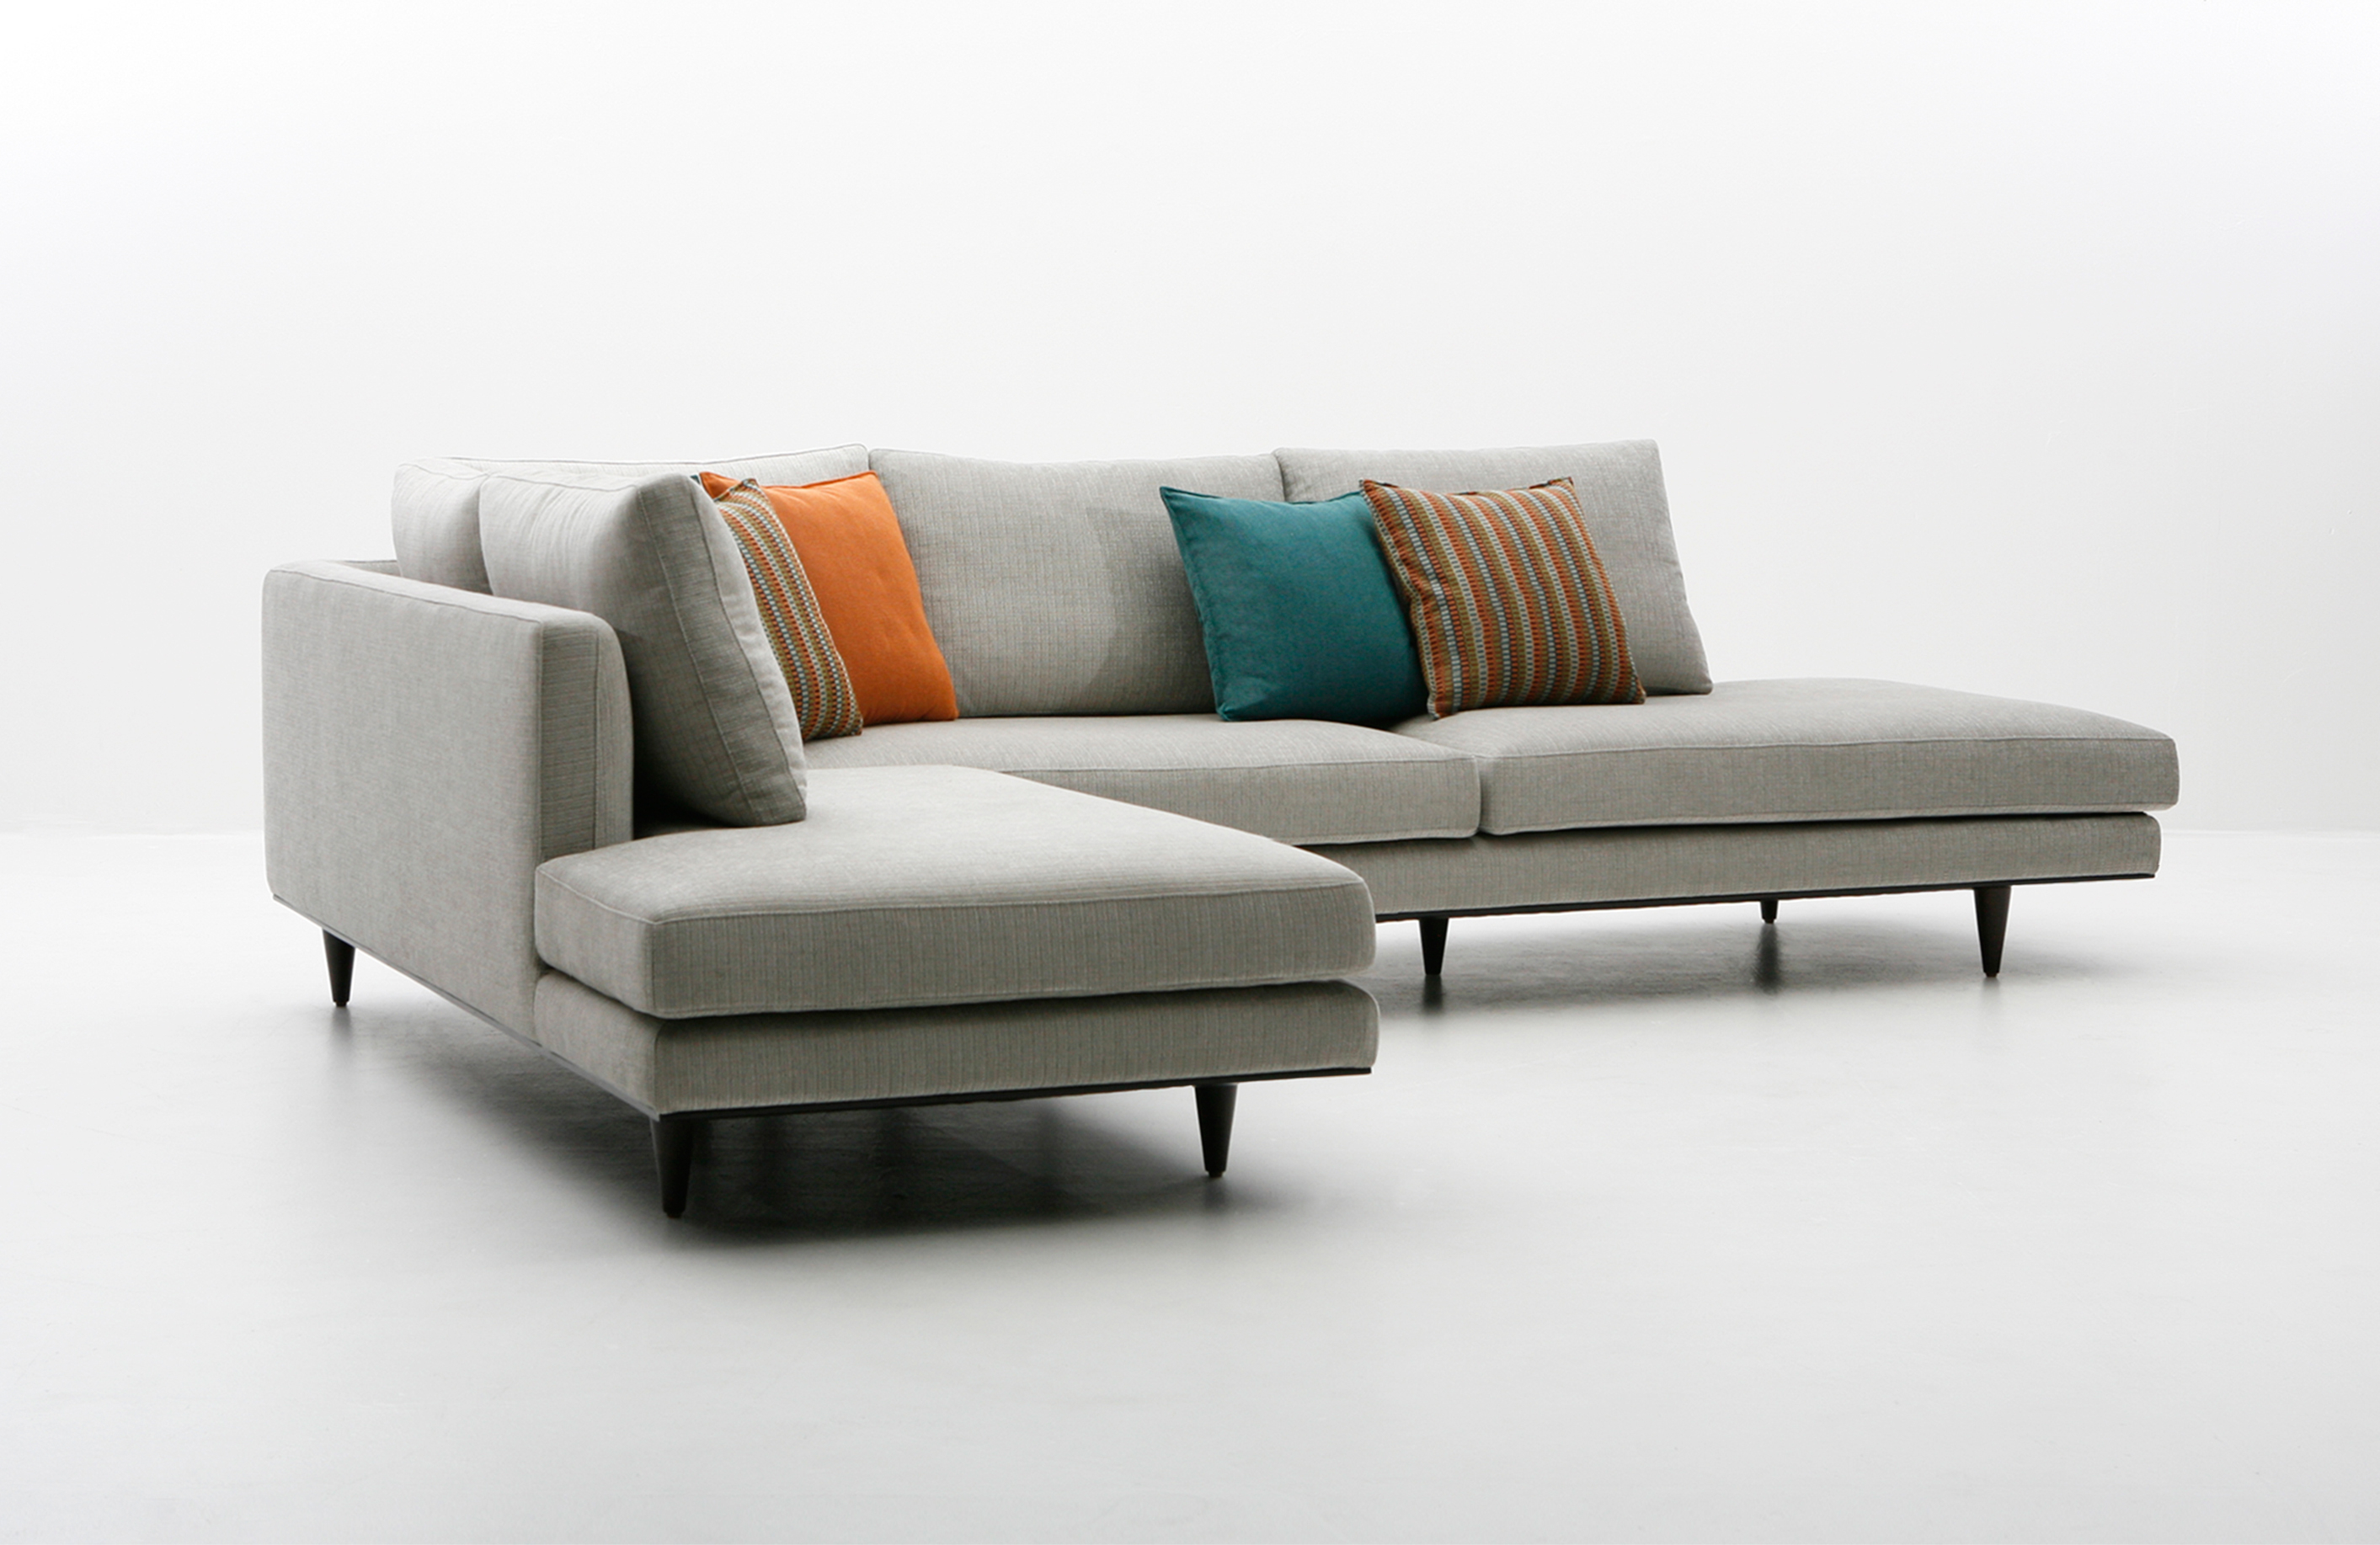 Dellarobbia Milo Sofa, Chair And Sectional   Living Room   Sklar Intended For Milo Sofa Chairs (Image 6 of 25)